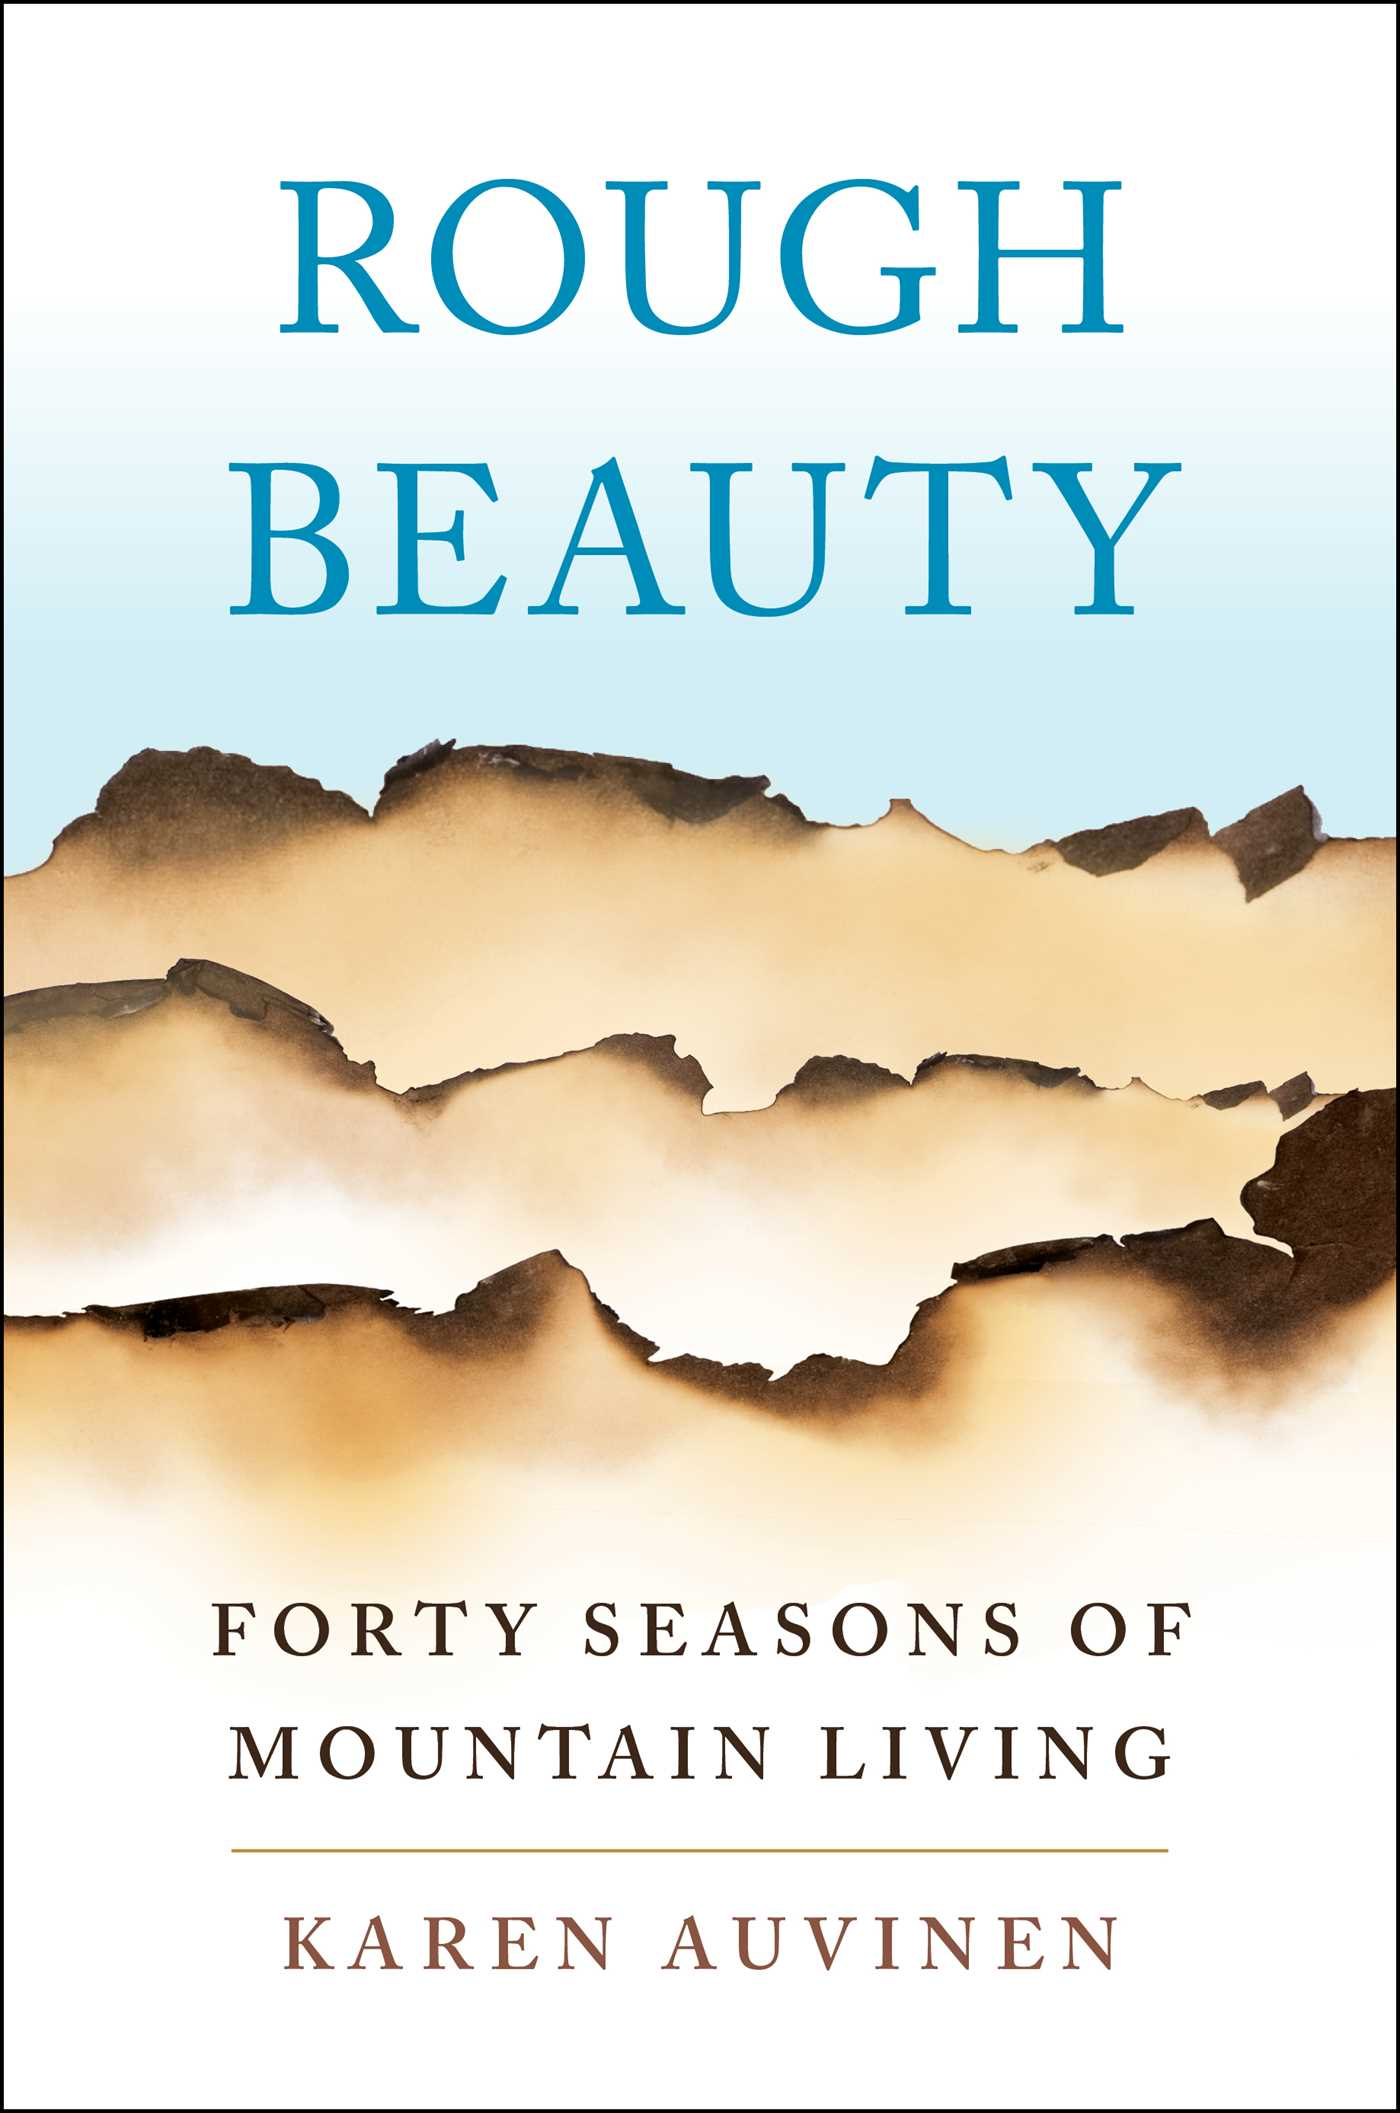 Book Cover Image (jpg): Rough Beauty